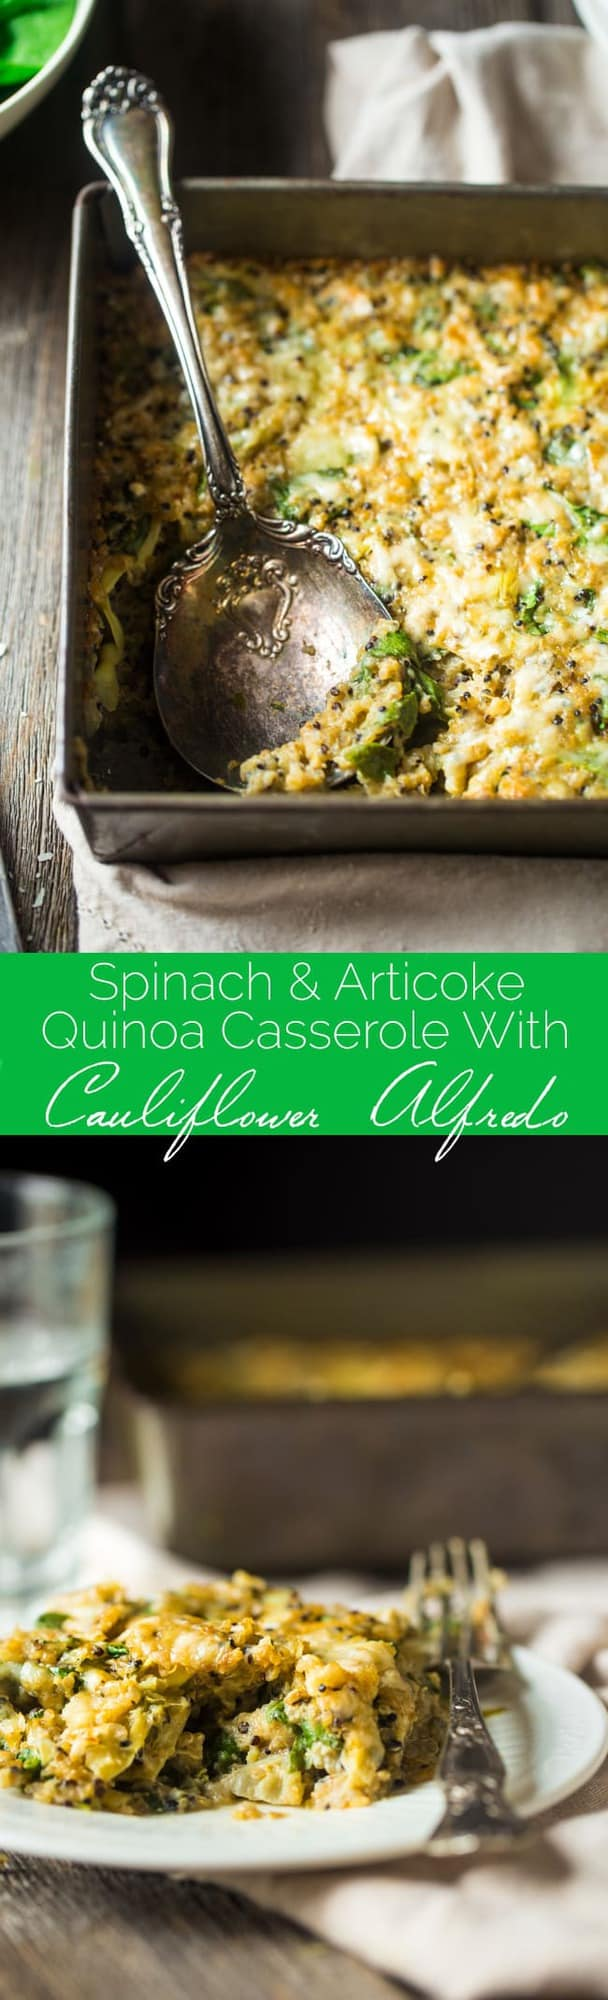 Spinach and Artichoke Quinoa Casserole with Cauliflower Alfredo Sauce - This creamy, gluten free quinoa casserole tastes like spinach and artichoke dip in a healthy, weeknight dinner form! No one will it has hidden veggies and is only 180 calories and 5 SmartPoints! | Foodfaithfitness.com | @FoodFaithFit